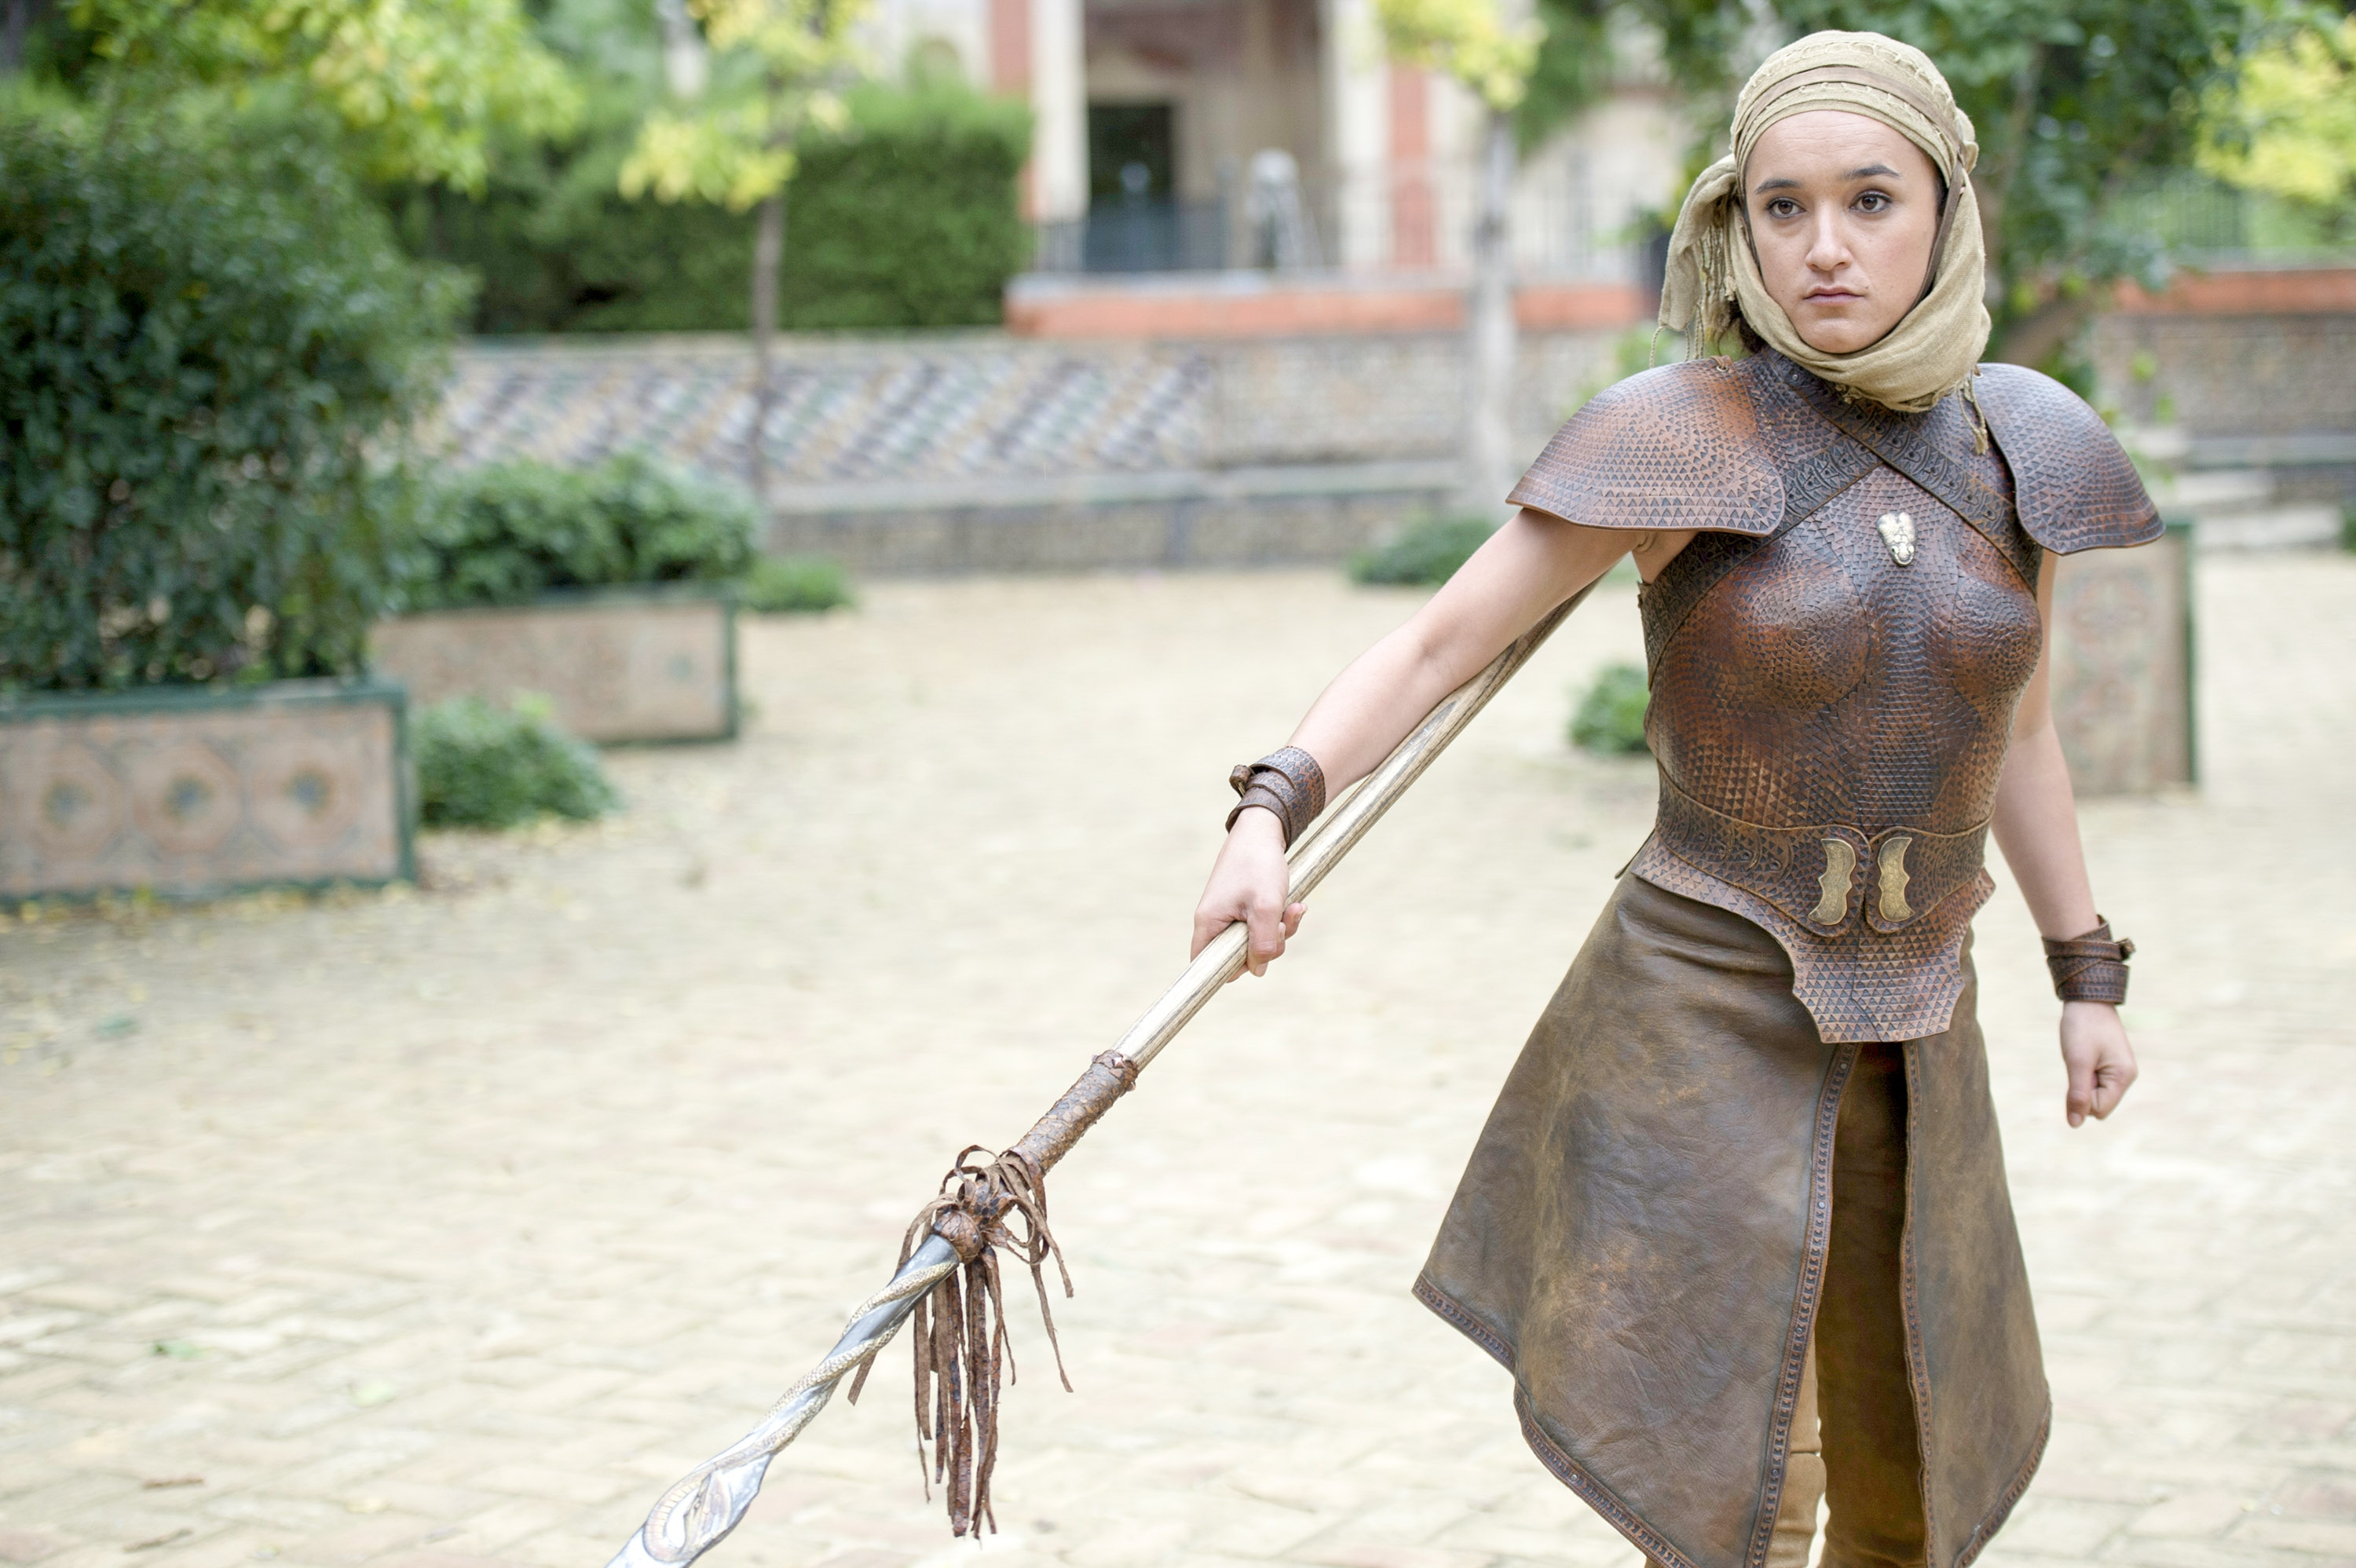 Lesser-Known Game of Thrones Characters Facts